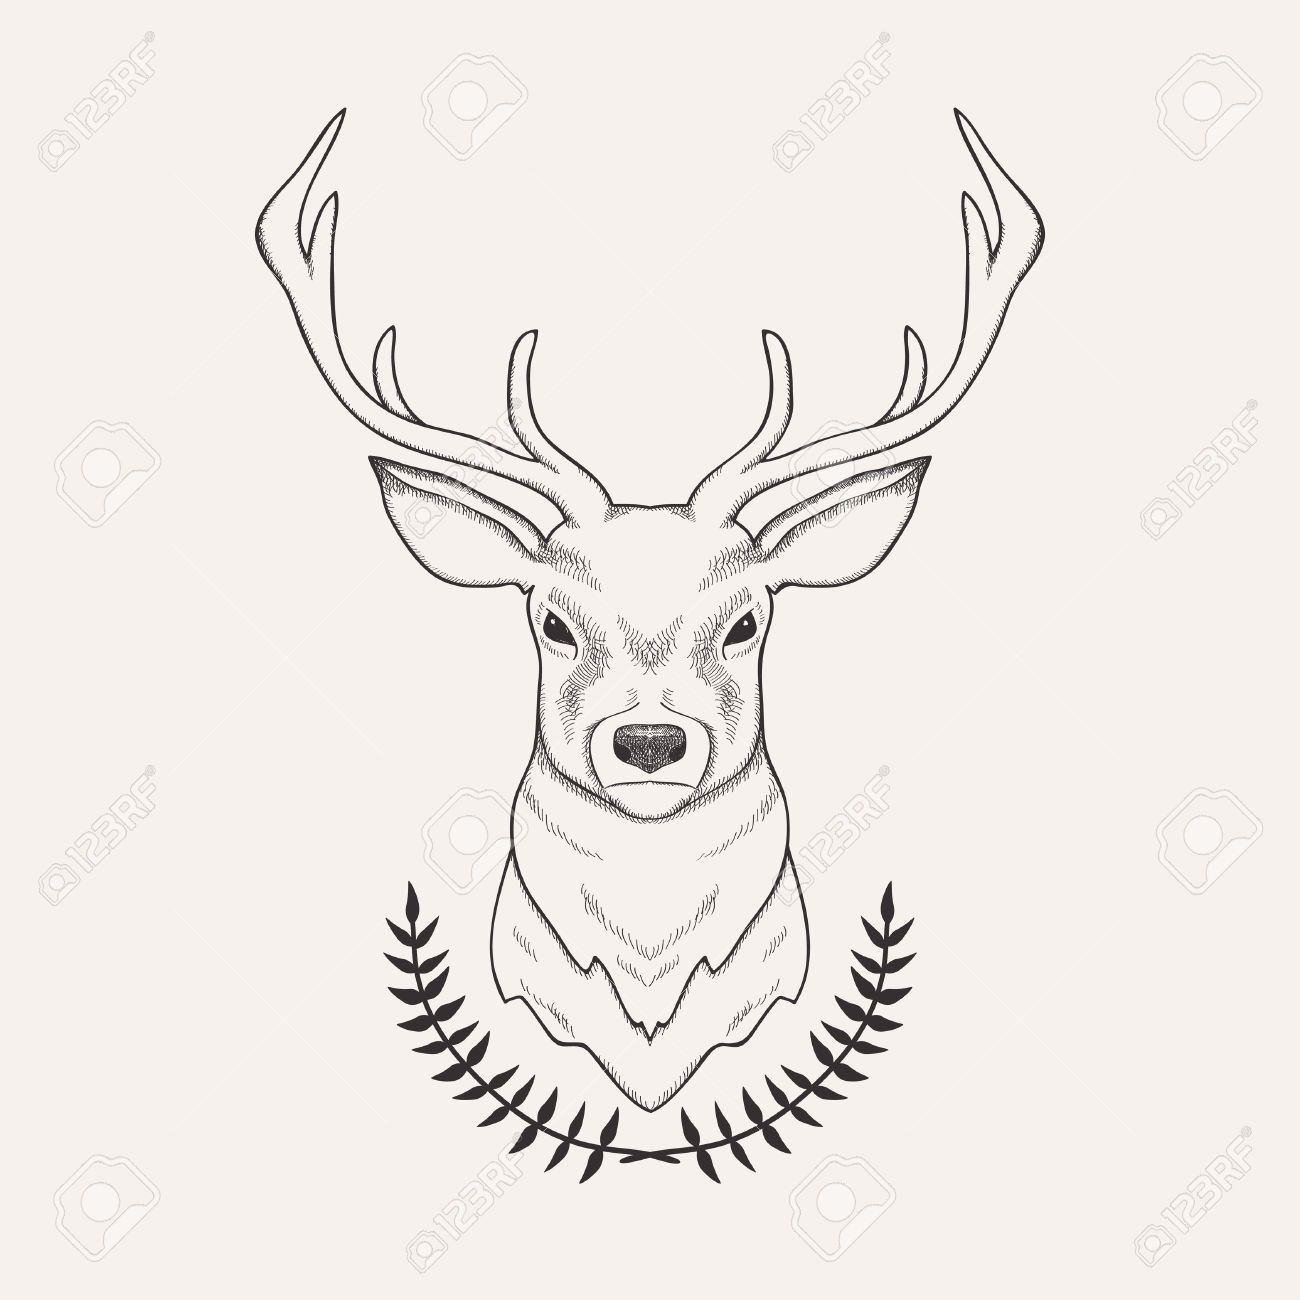 deer antlers drawing easy - photo #30